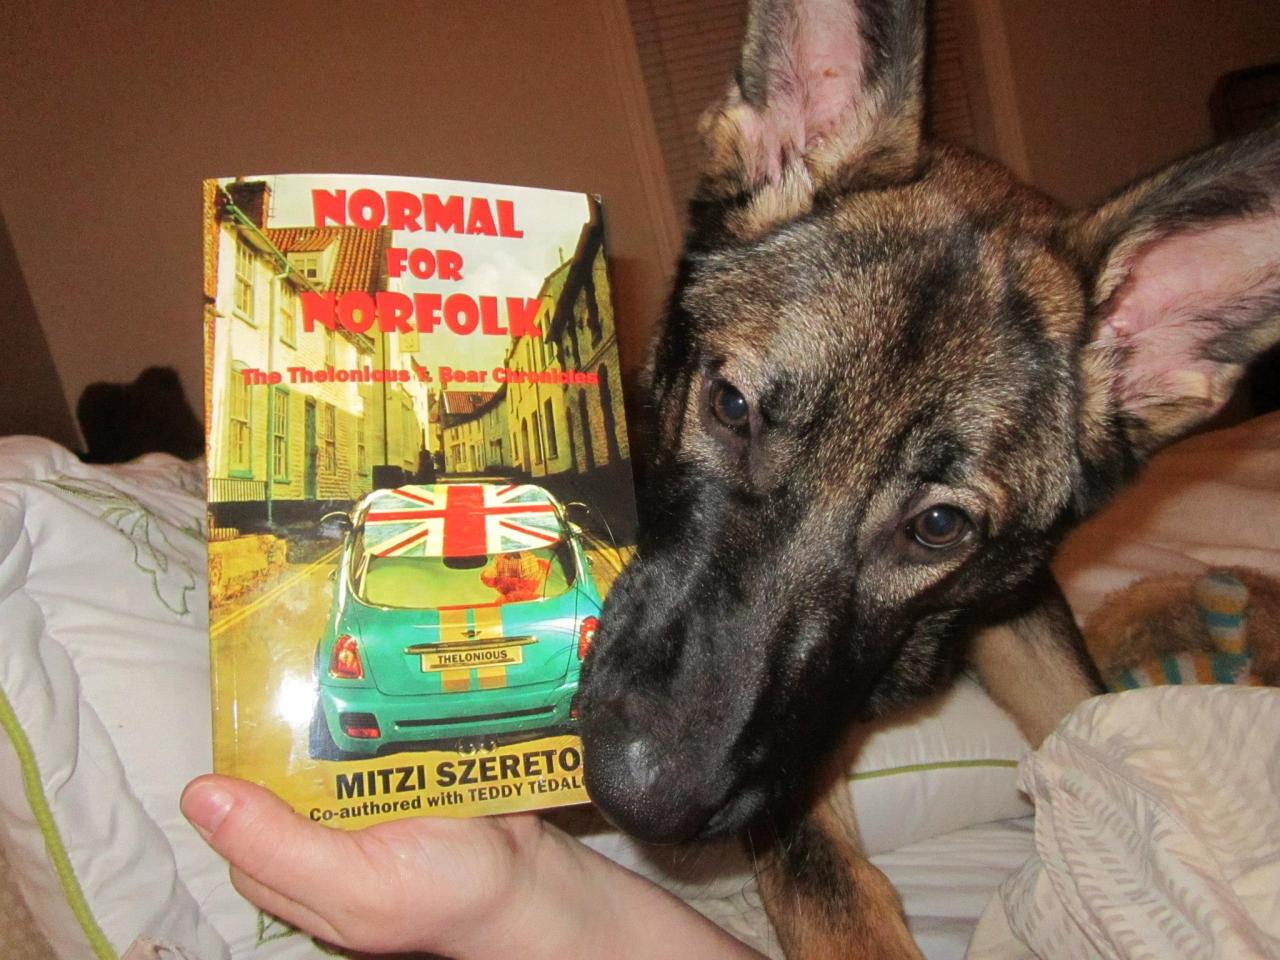 NORMAL FOR NORFOLK (THE THELONIOUS T. BEAR CHRONICLES) is going to the dogs! http://mitziszereto.com/normalfornorfolk/